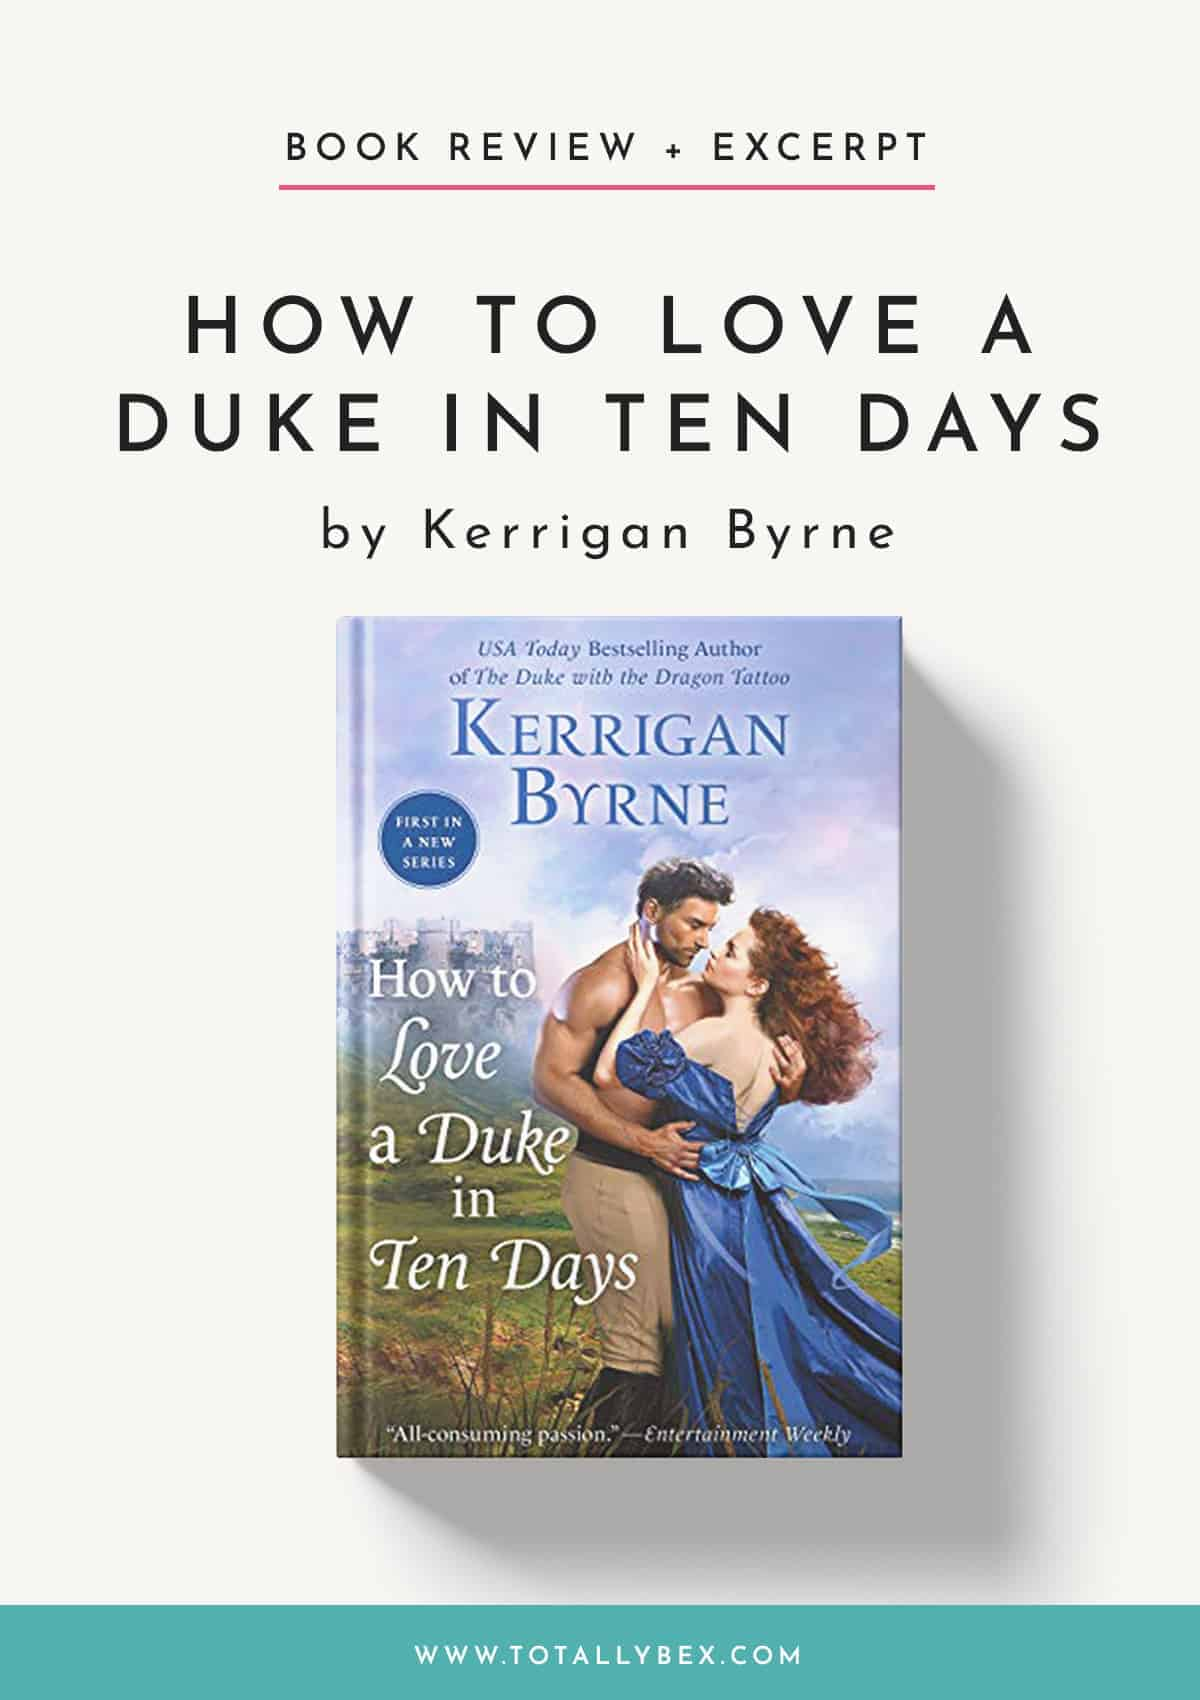 How to Love a Duke in Ten Days by Kerrigan Byrne-Book Review